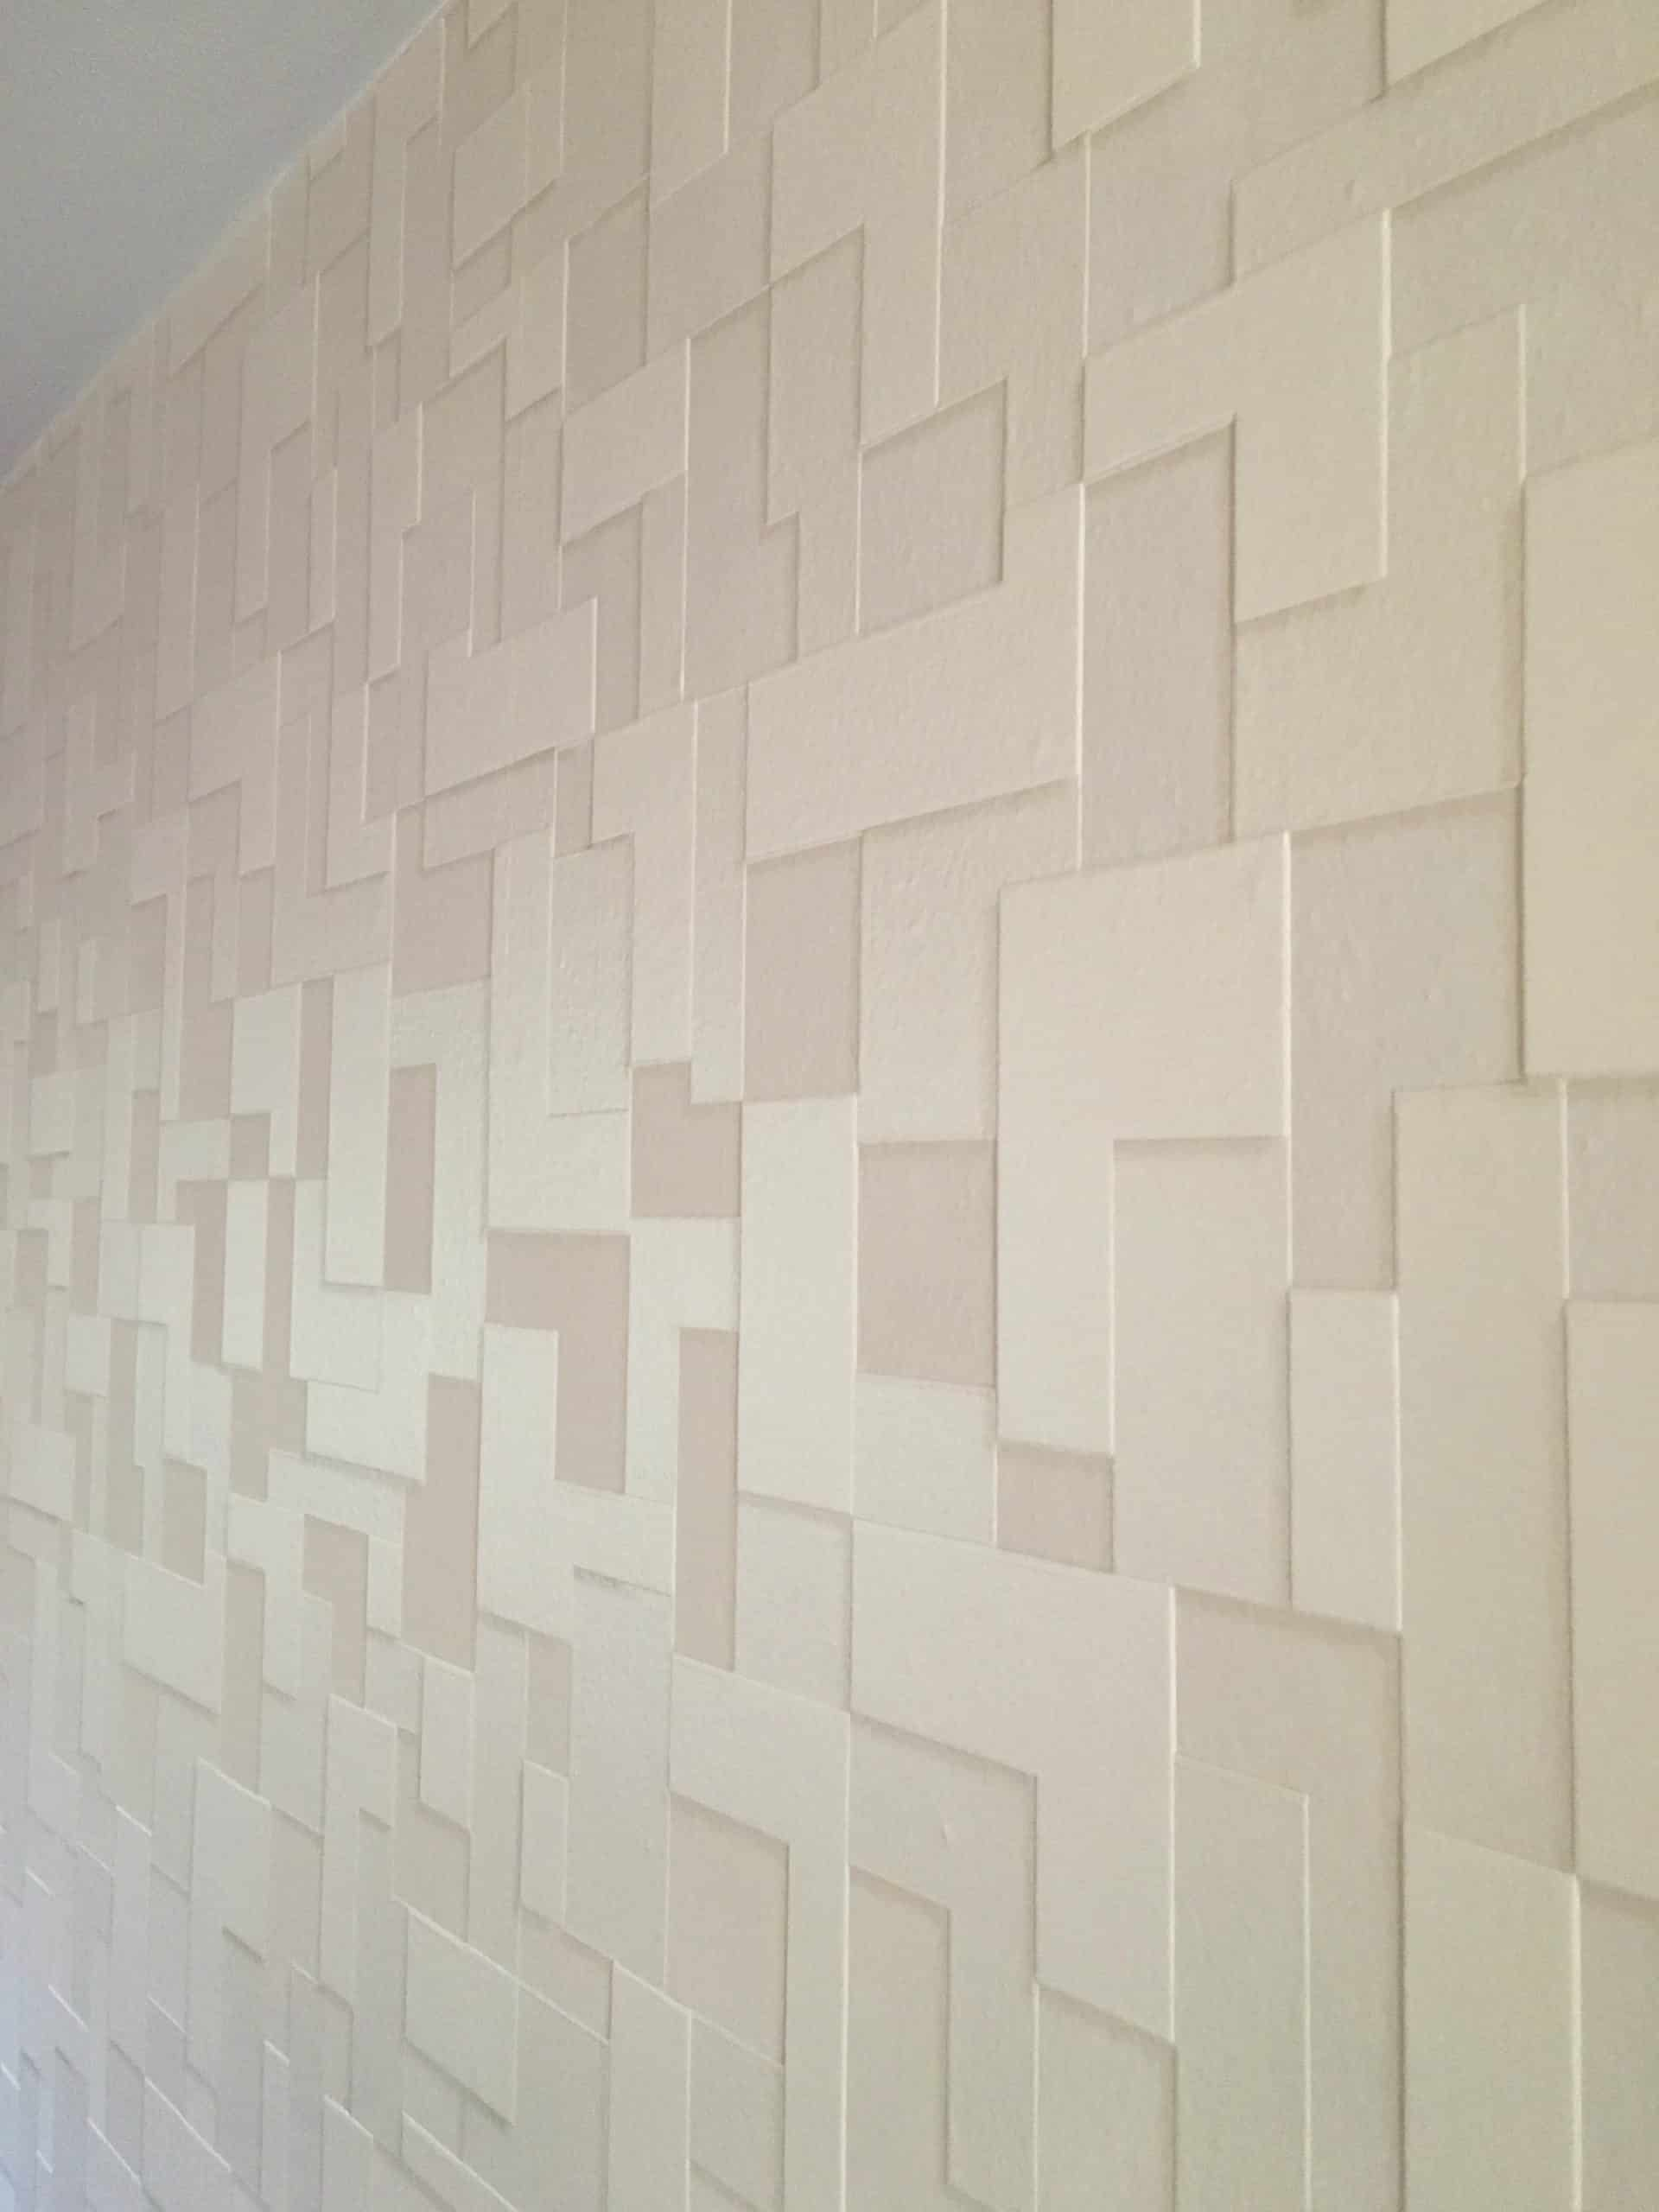 patterned wallpaper in varying shapes and shades of beige